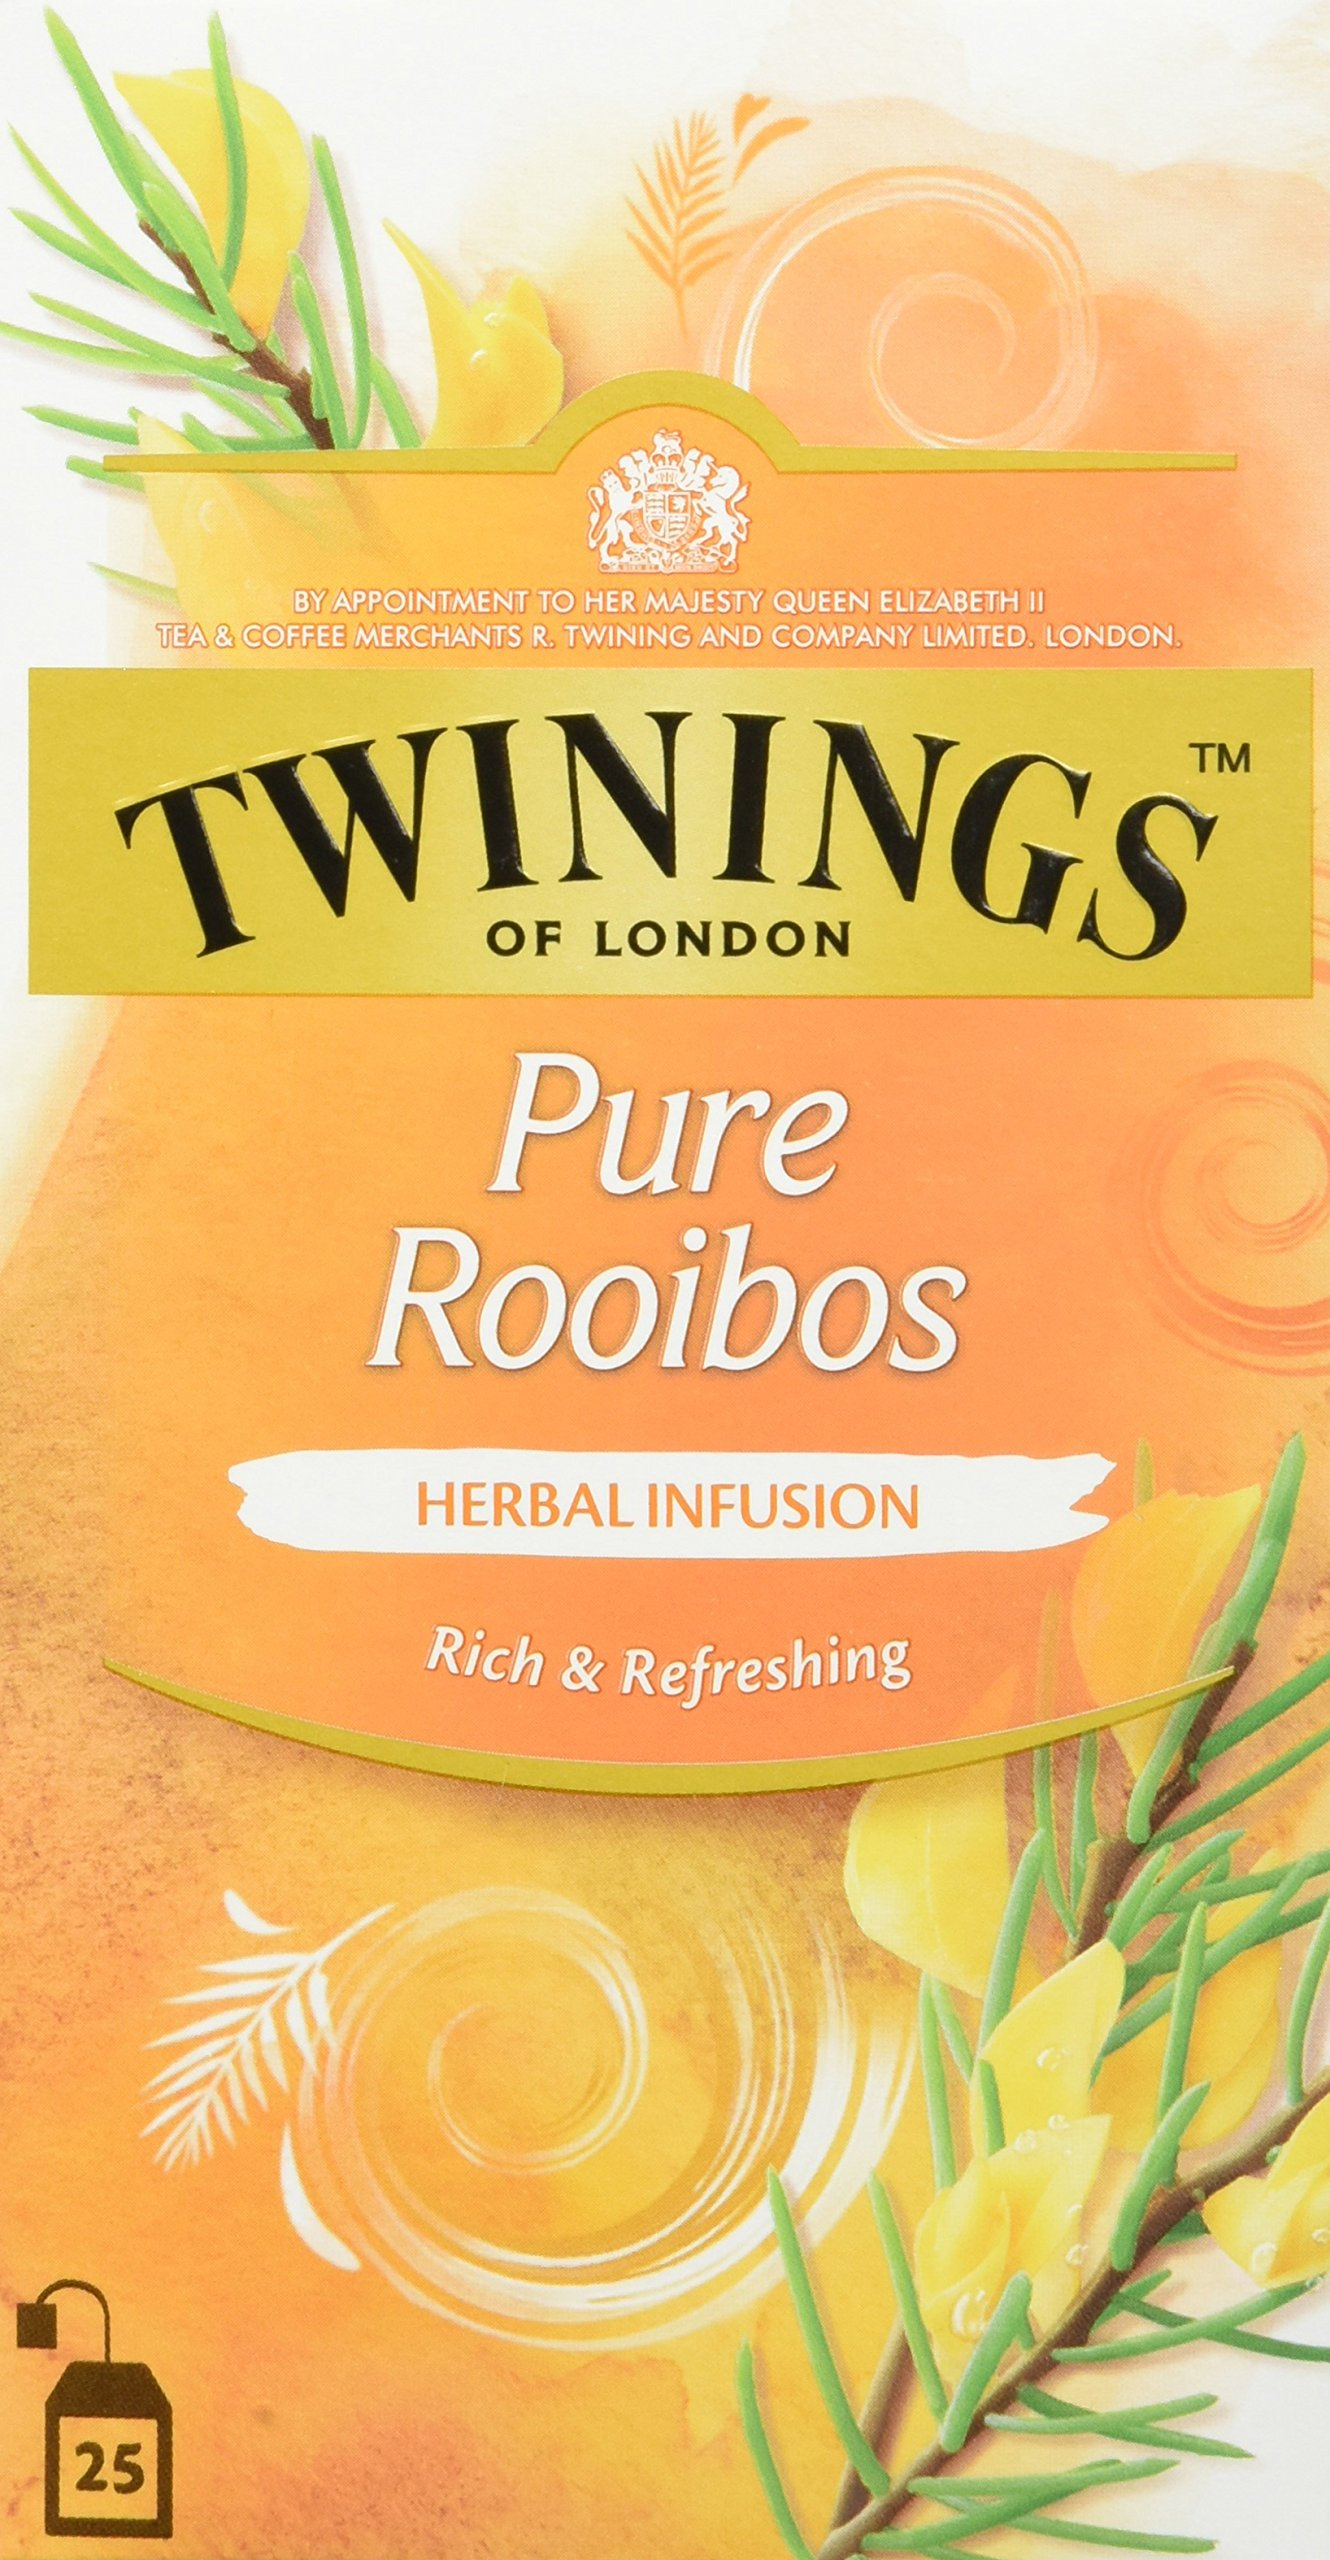 Twinings-Pure-Rooibos-25-Beutel-x-2g-50g-3er-Pack-3-x-50-g